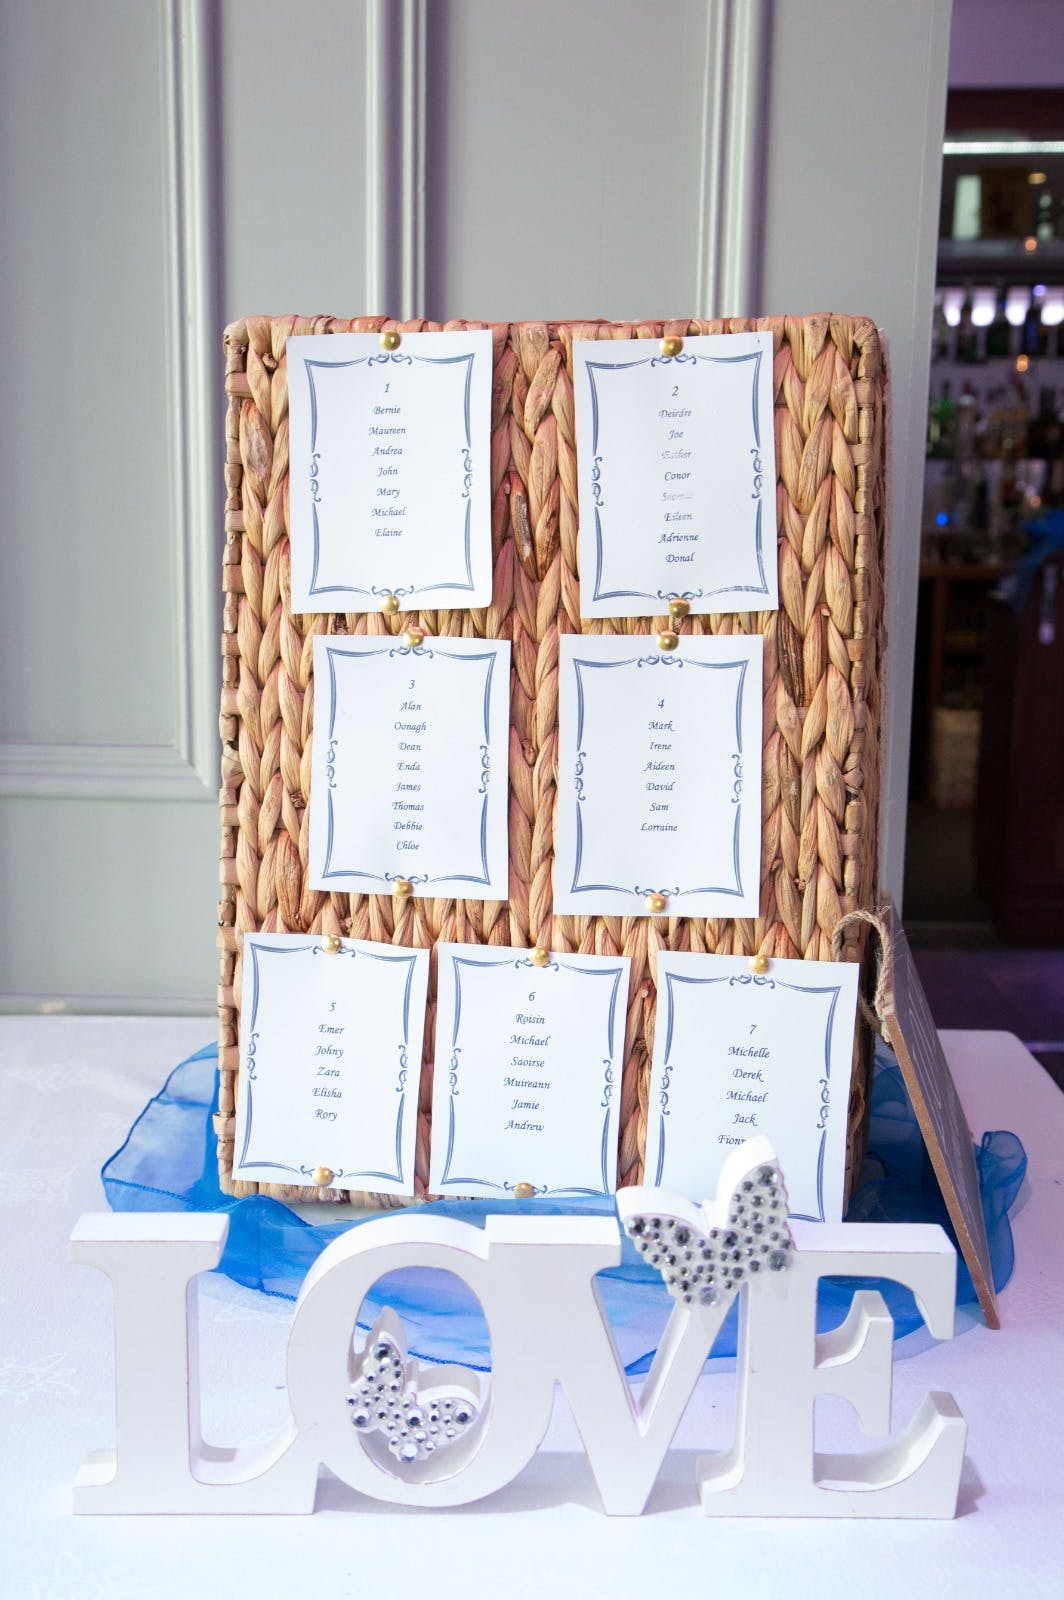 Table plan for a wedding in The Forde Room at Riverside Hotel.